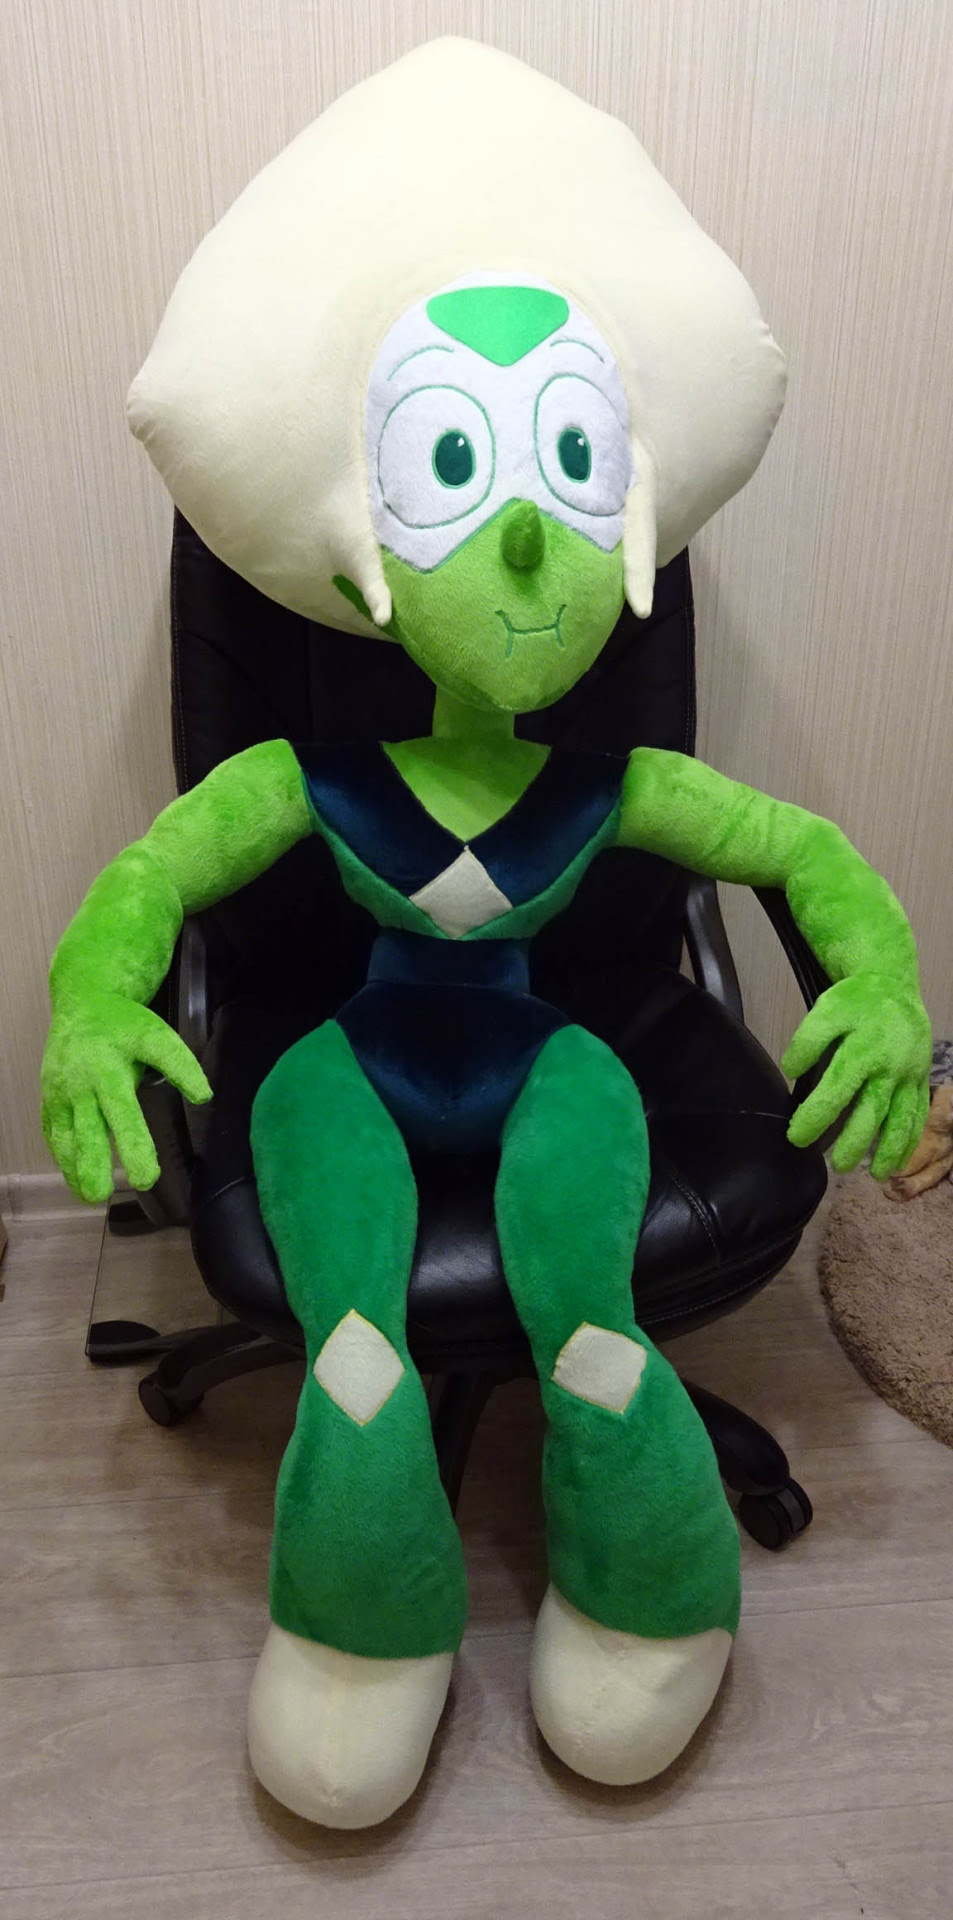 giant size Peridot commission. She is around 155-160 cm tall and is full poseable :) pictured her on coach and chair for size comparison + one of my cats is nearby at the last pic XD